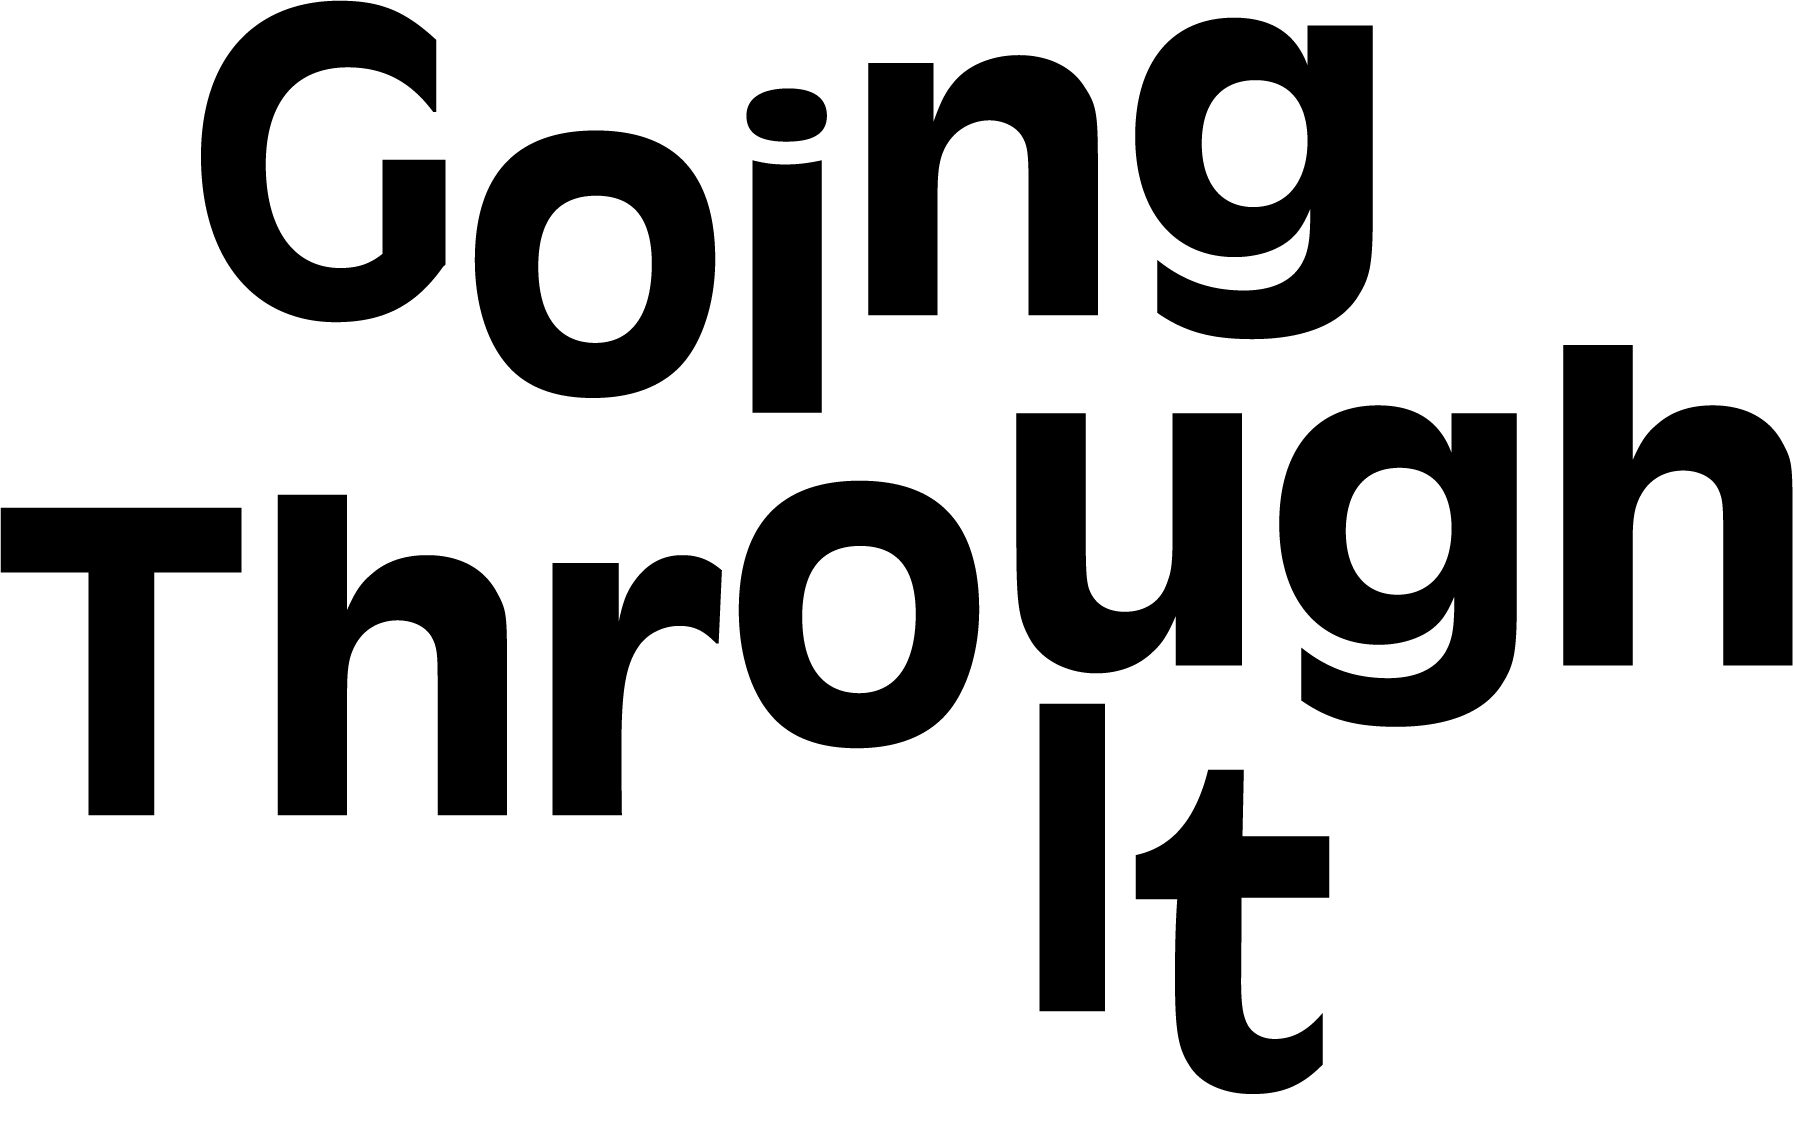 Going Through It  logo